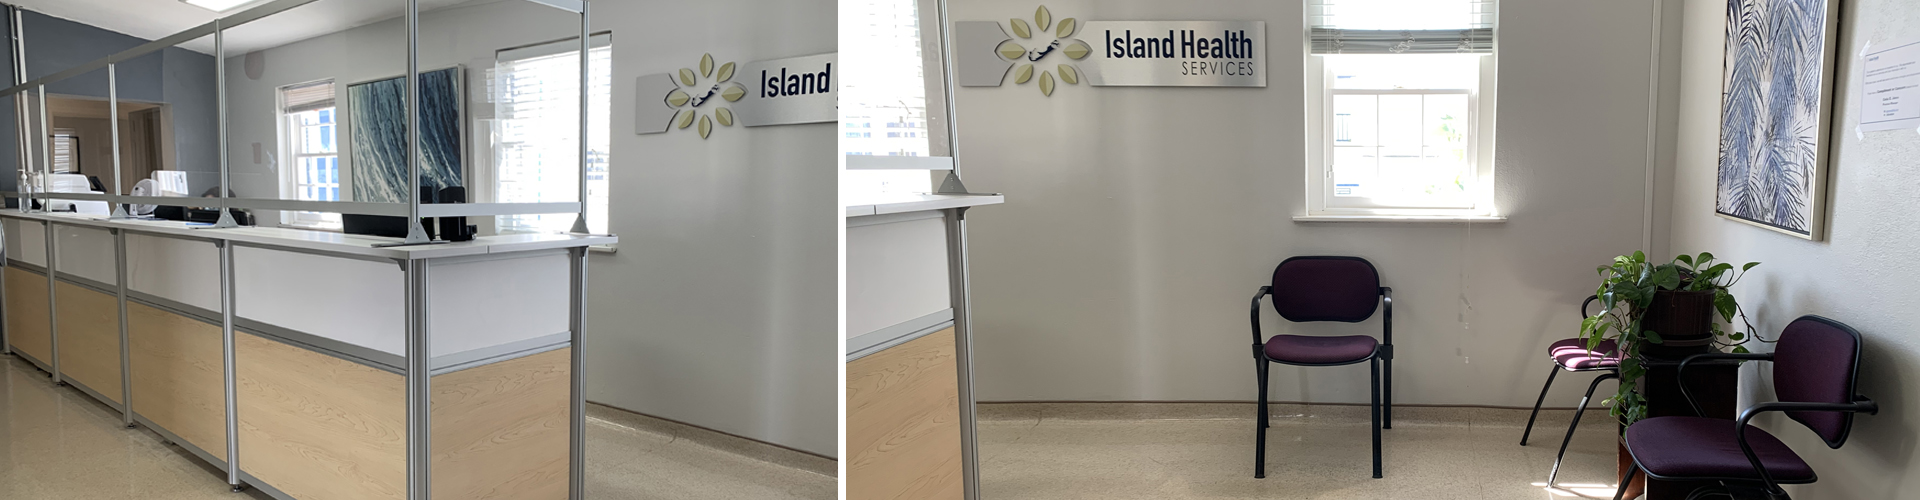 Island Health Services St. Georges